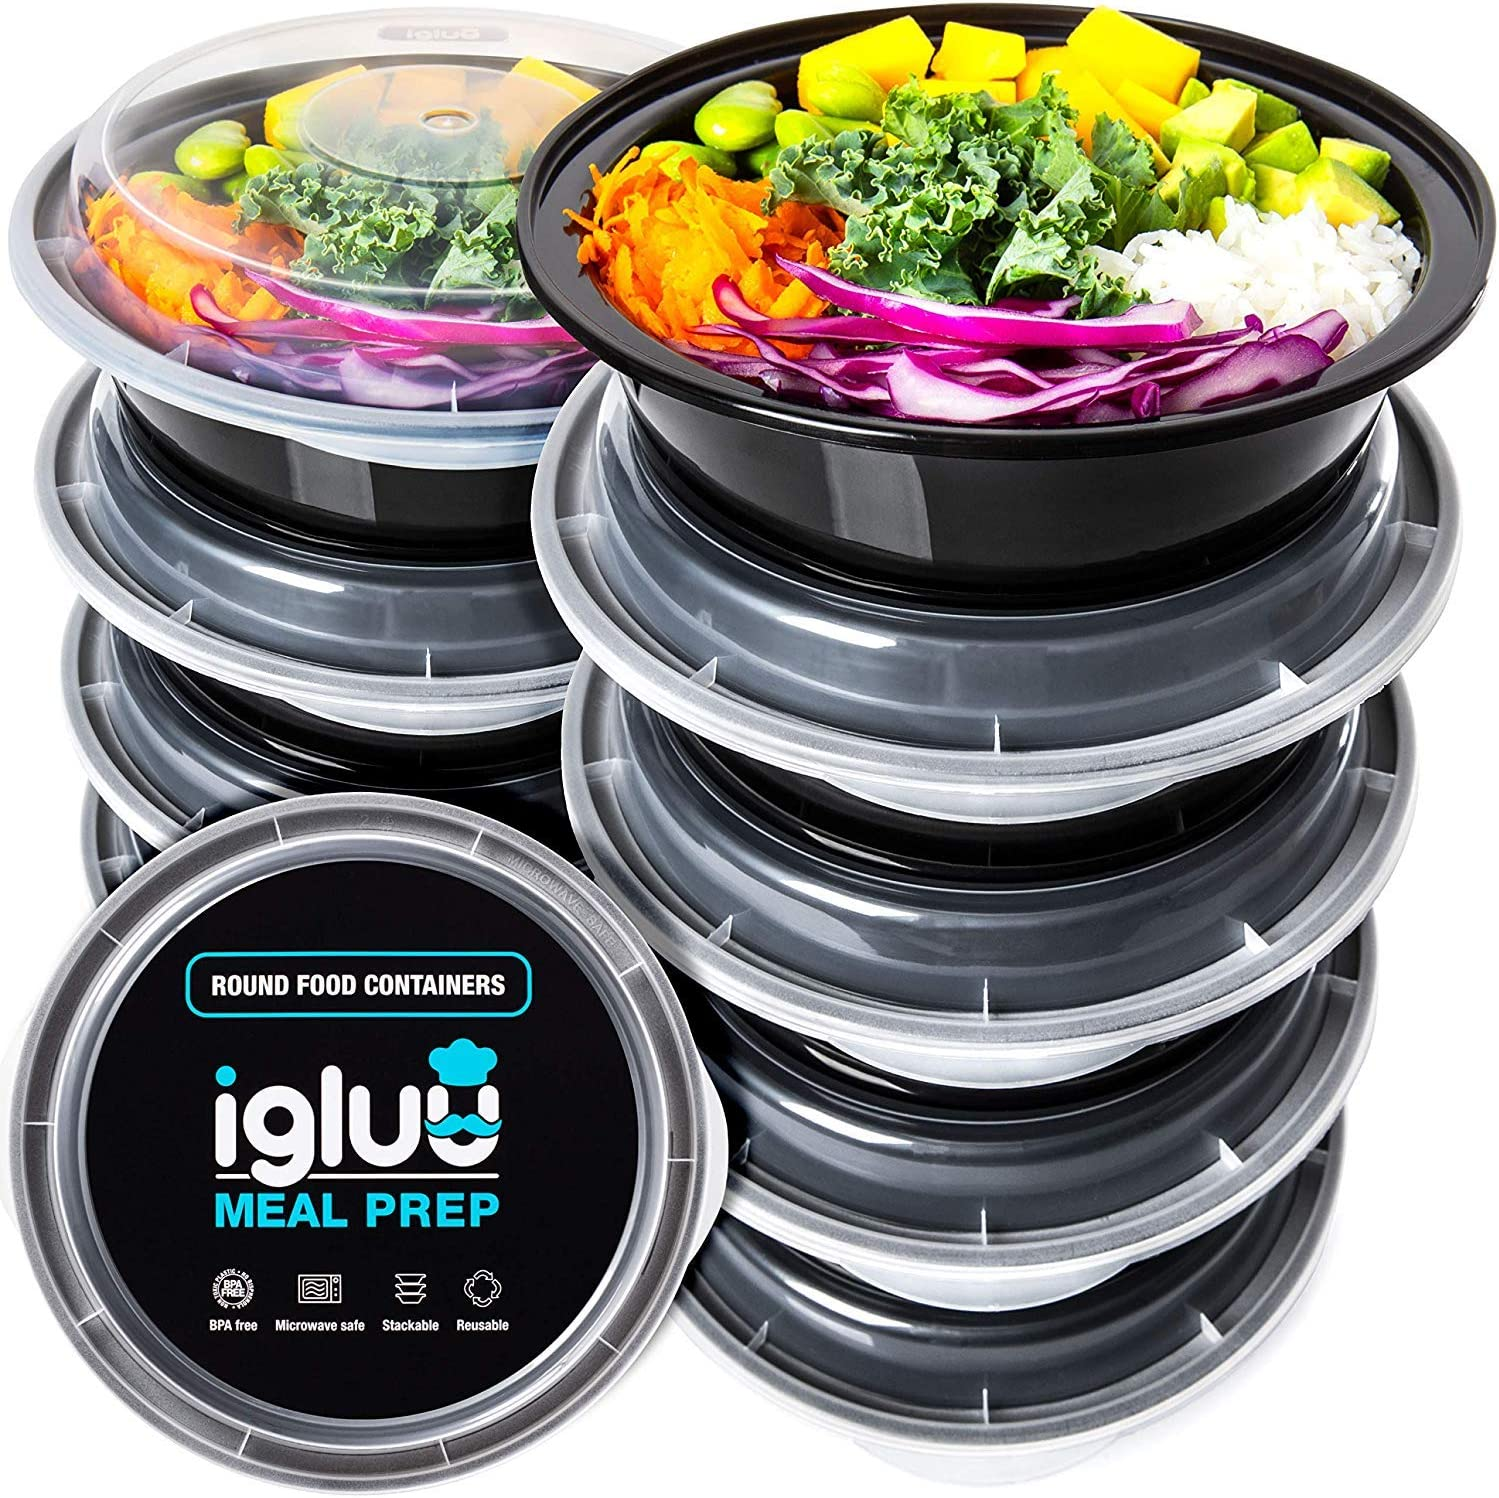 Igluu Meal Prep Round Plastic Containers - Reusable BPA Free Food Containers with Airtight Lids - Microwavable, Freezer and Dishwasher Safe - Ideal Stackable Salad Bowls - Bonus eBook - [10 Pack]